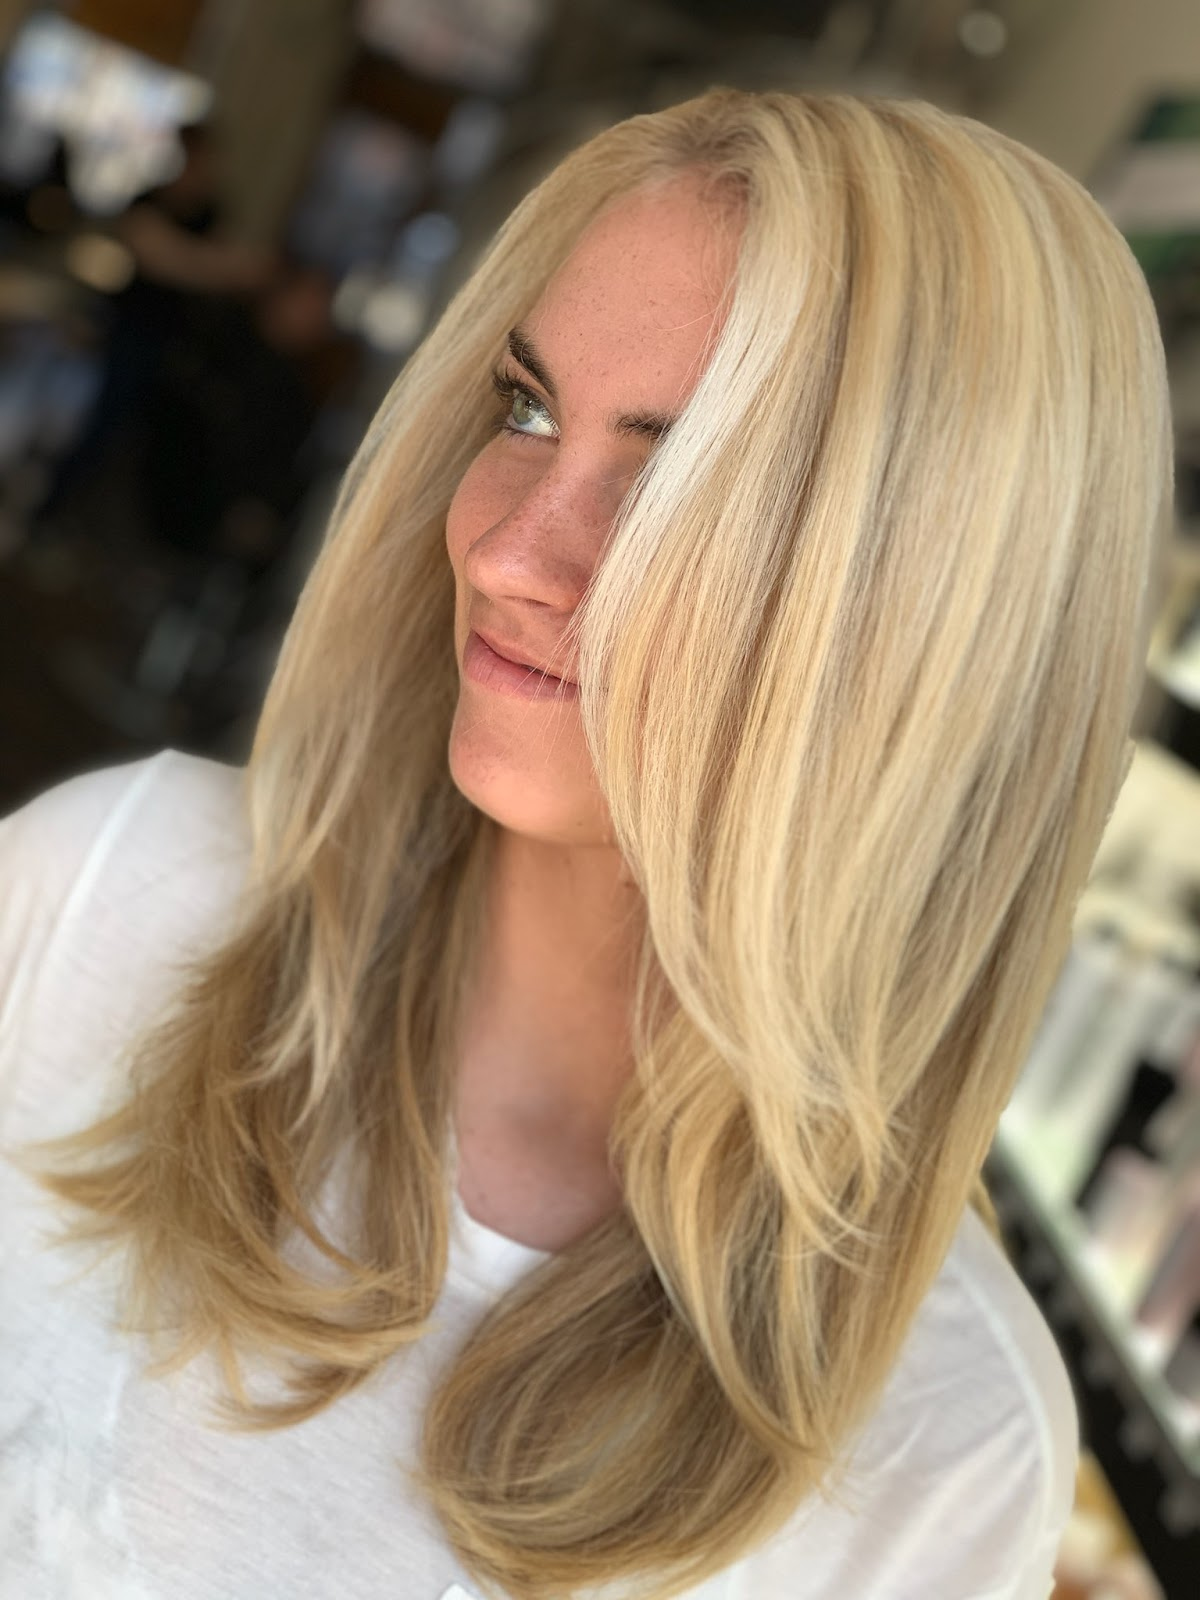 Blonding specialist in Columbus, Ohio